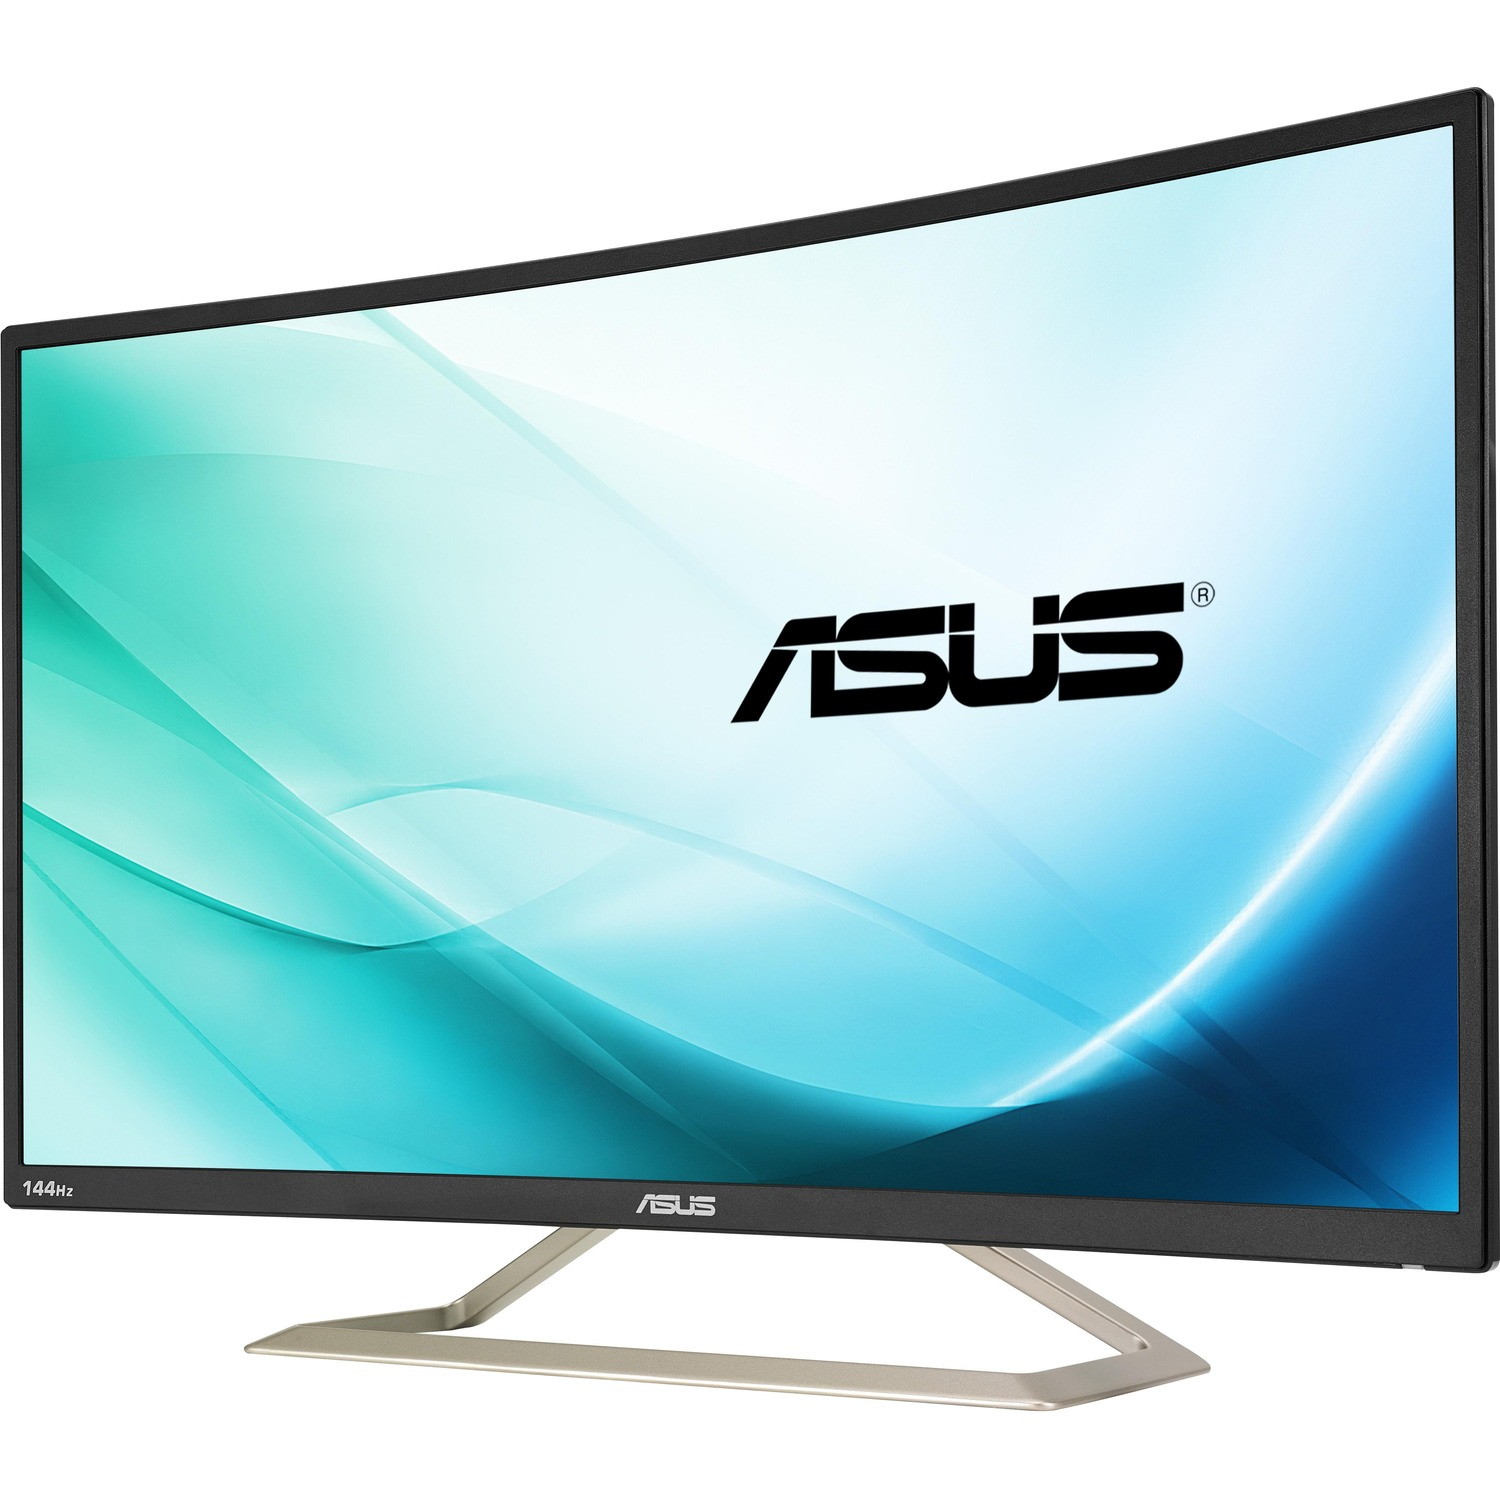 Asus VA326H 31.5inch LED LCD Monitor - 16:9 - 4 ms